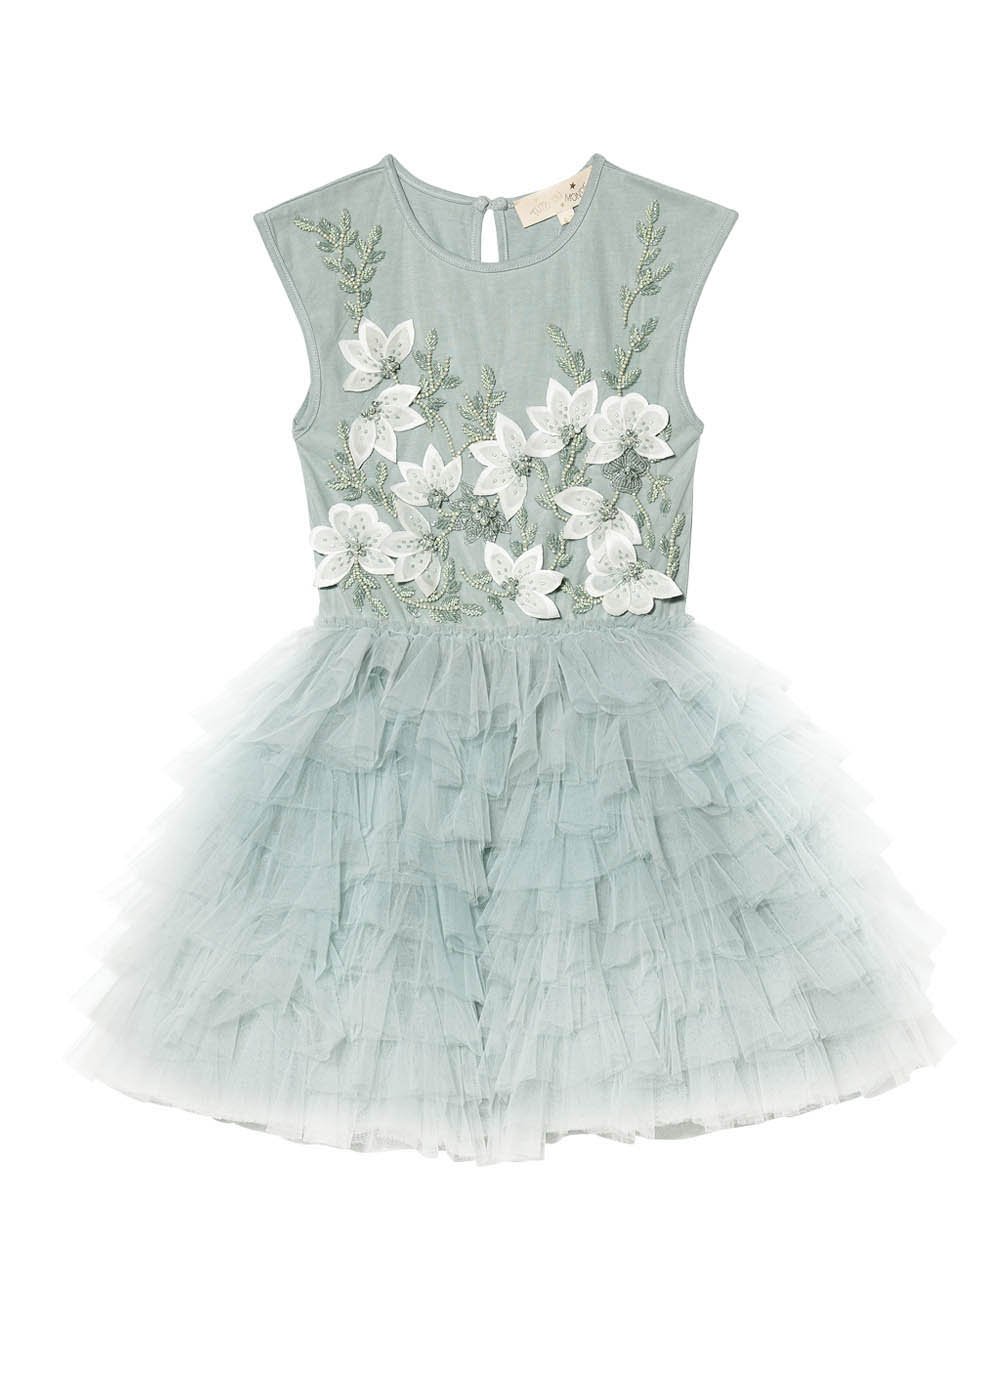 4c52b09879 ENCHANTING FABLE TUTU DRESS - IVY - Welcome to the World of Tutudumonde